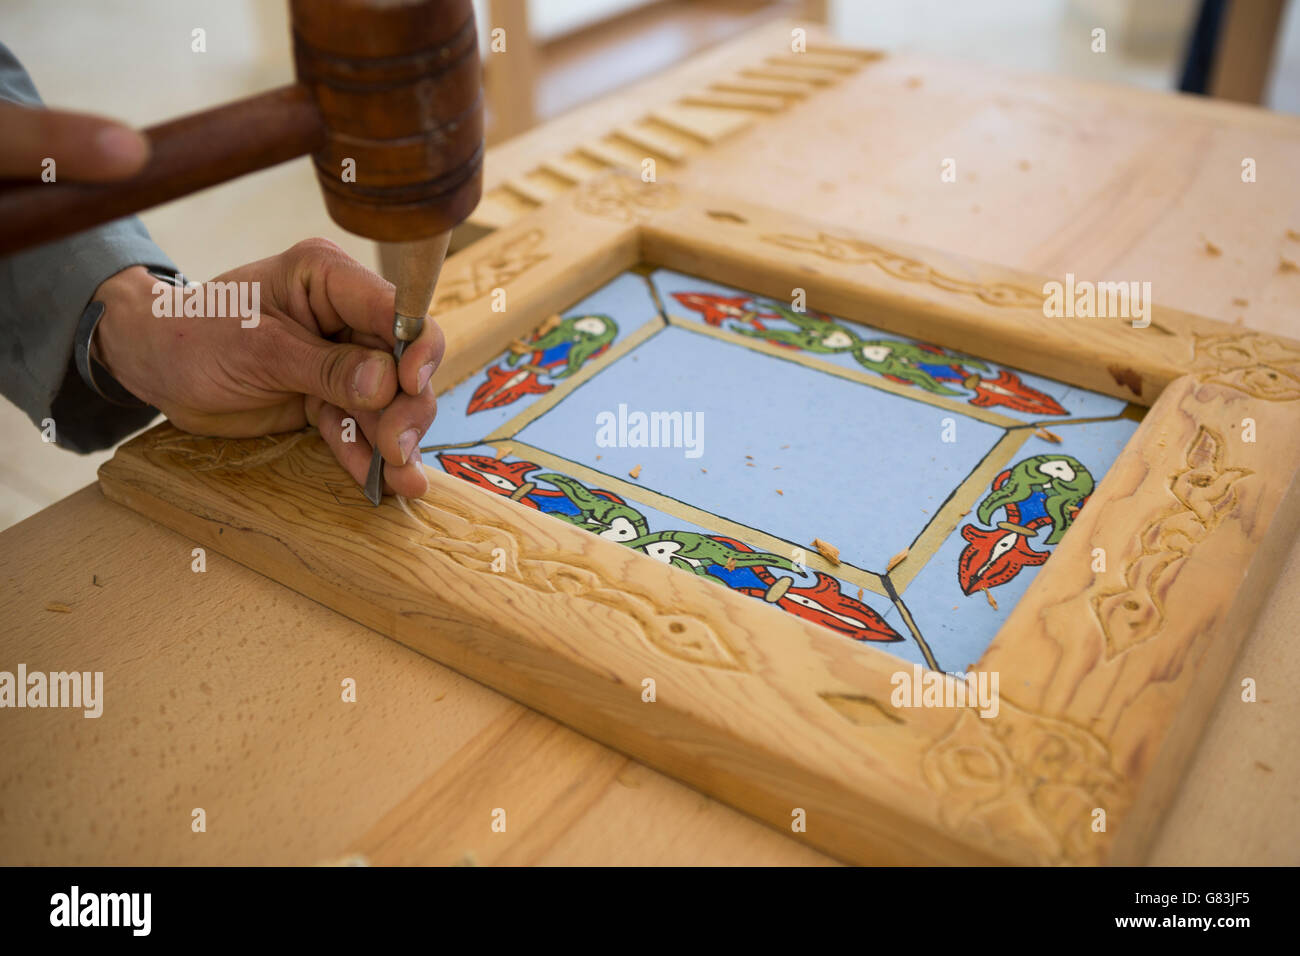 Students practice in woodworking class at the Institute of Traditional Arts in Fez, Morocco. - Stock Image